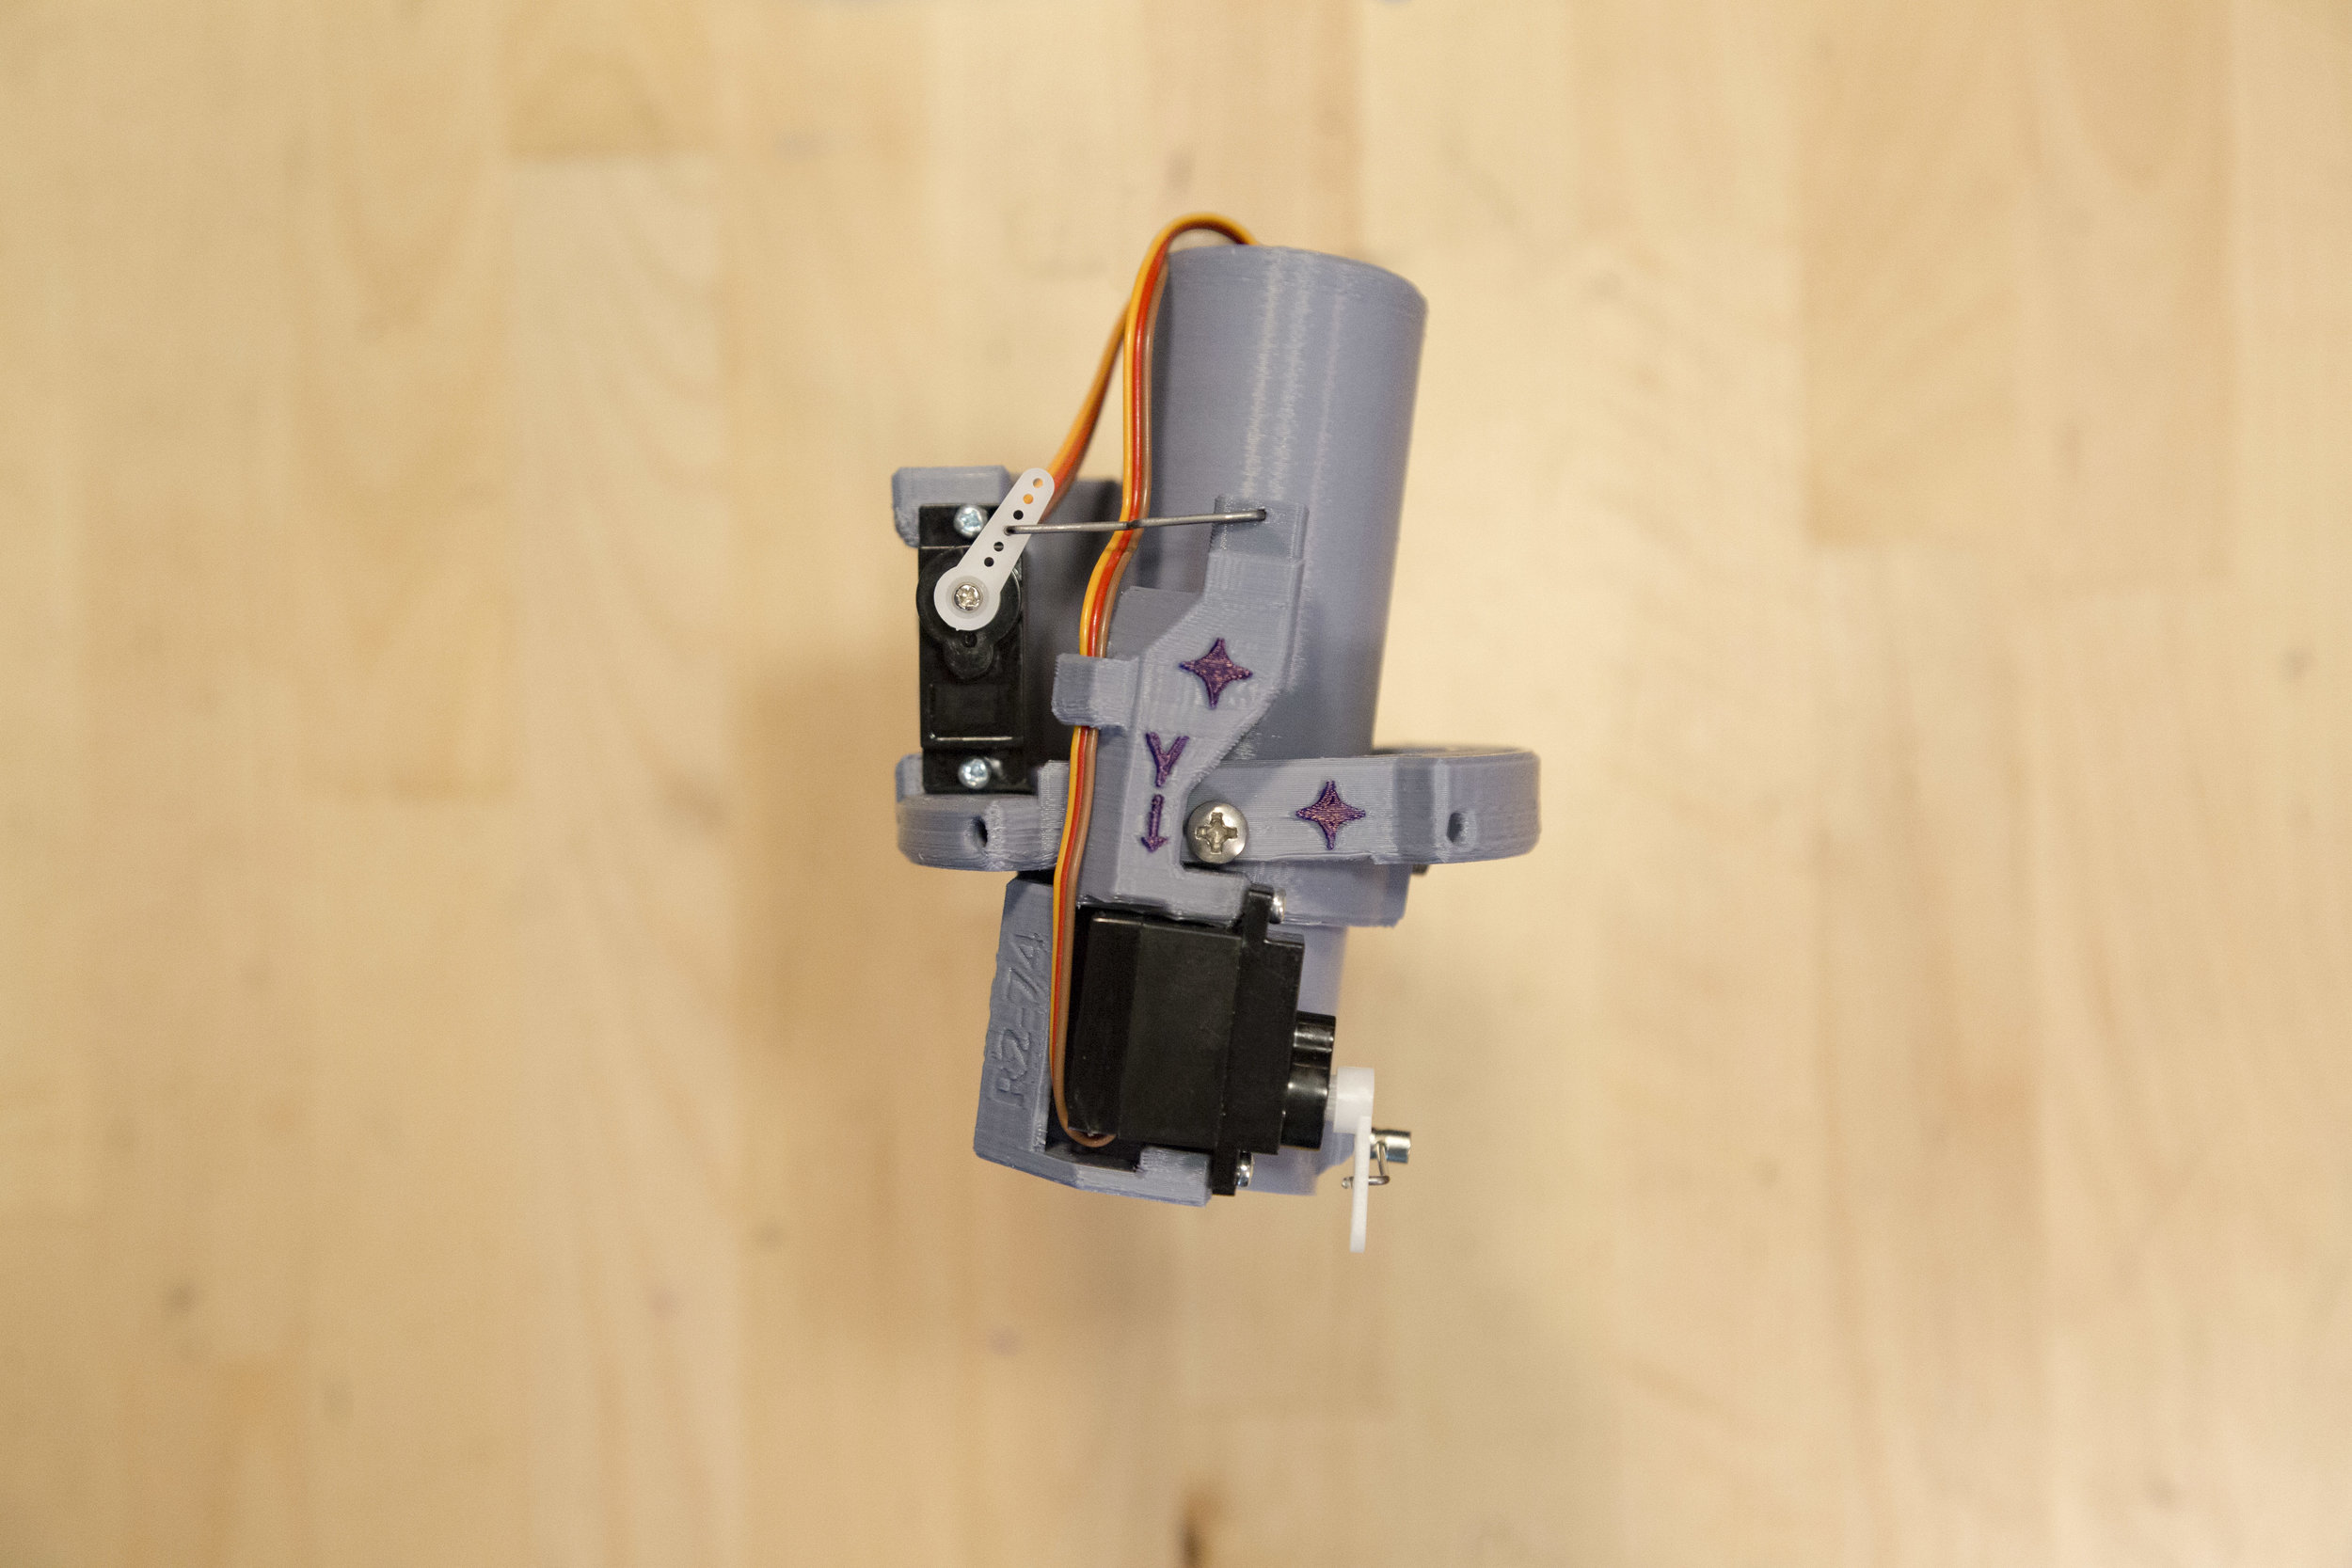 The TVC mount with about 5 degrees of actuation